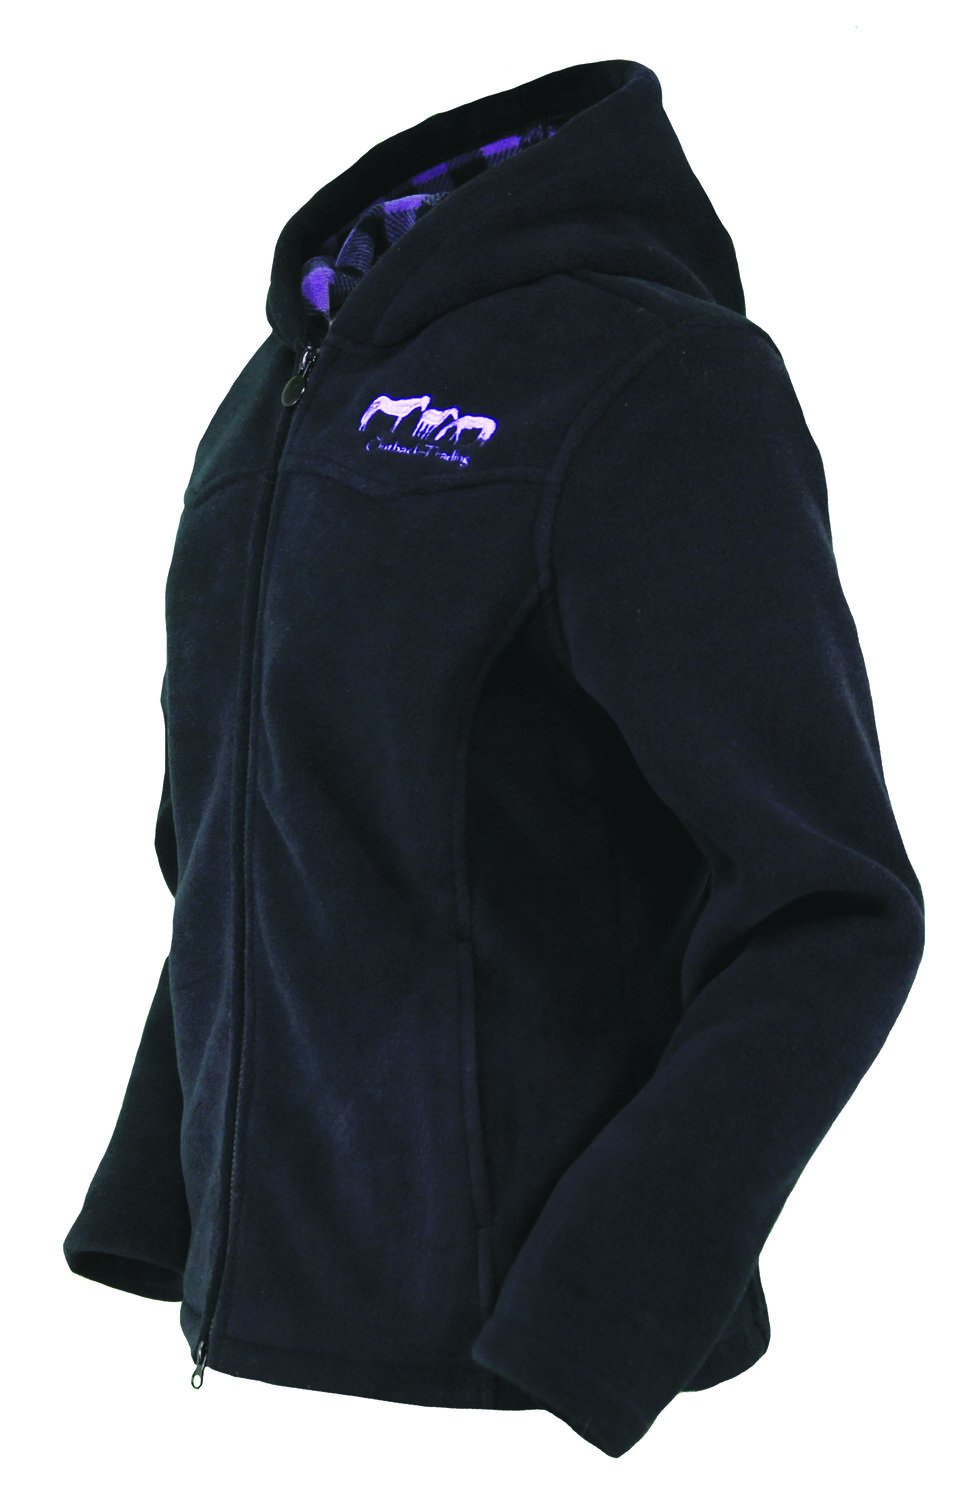 Outback Trading Company Women's Mt. Rocky Jacket, Black, hi-res